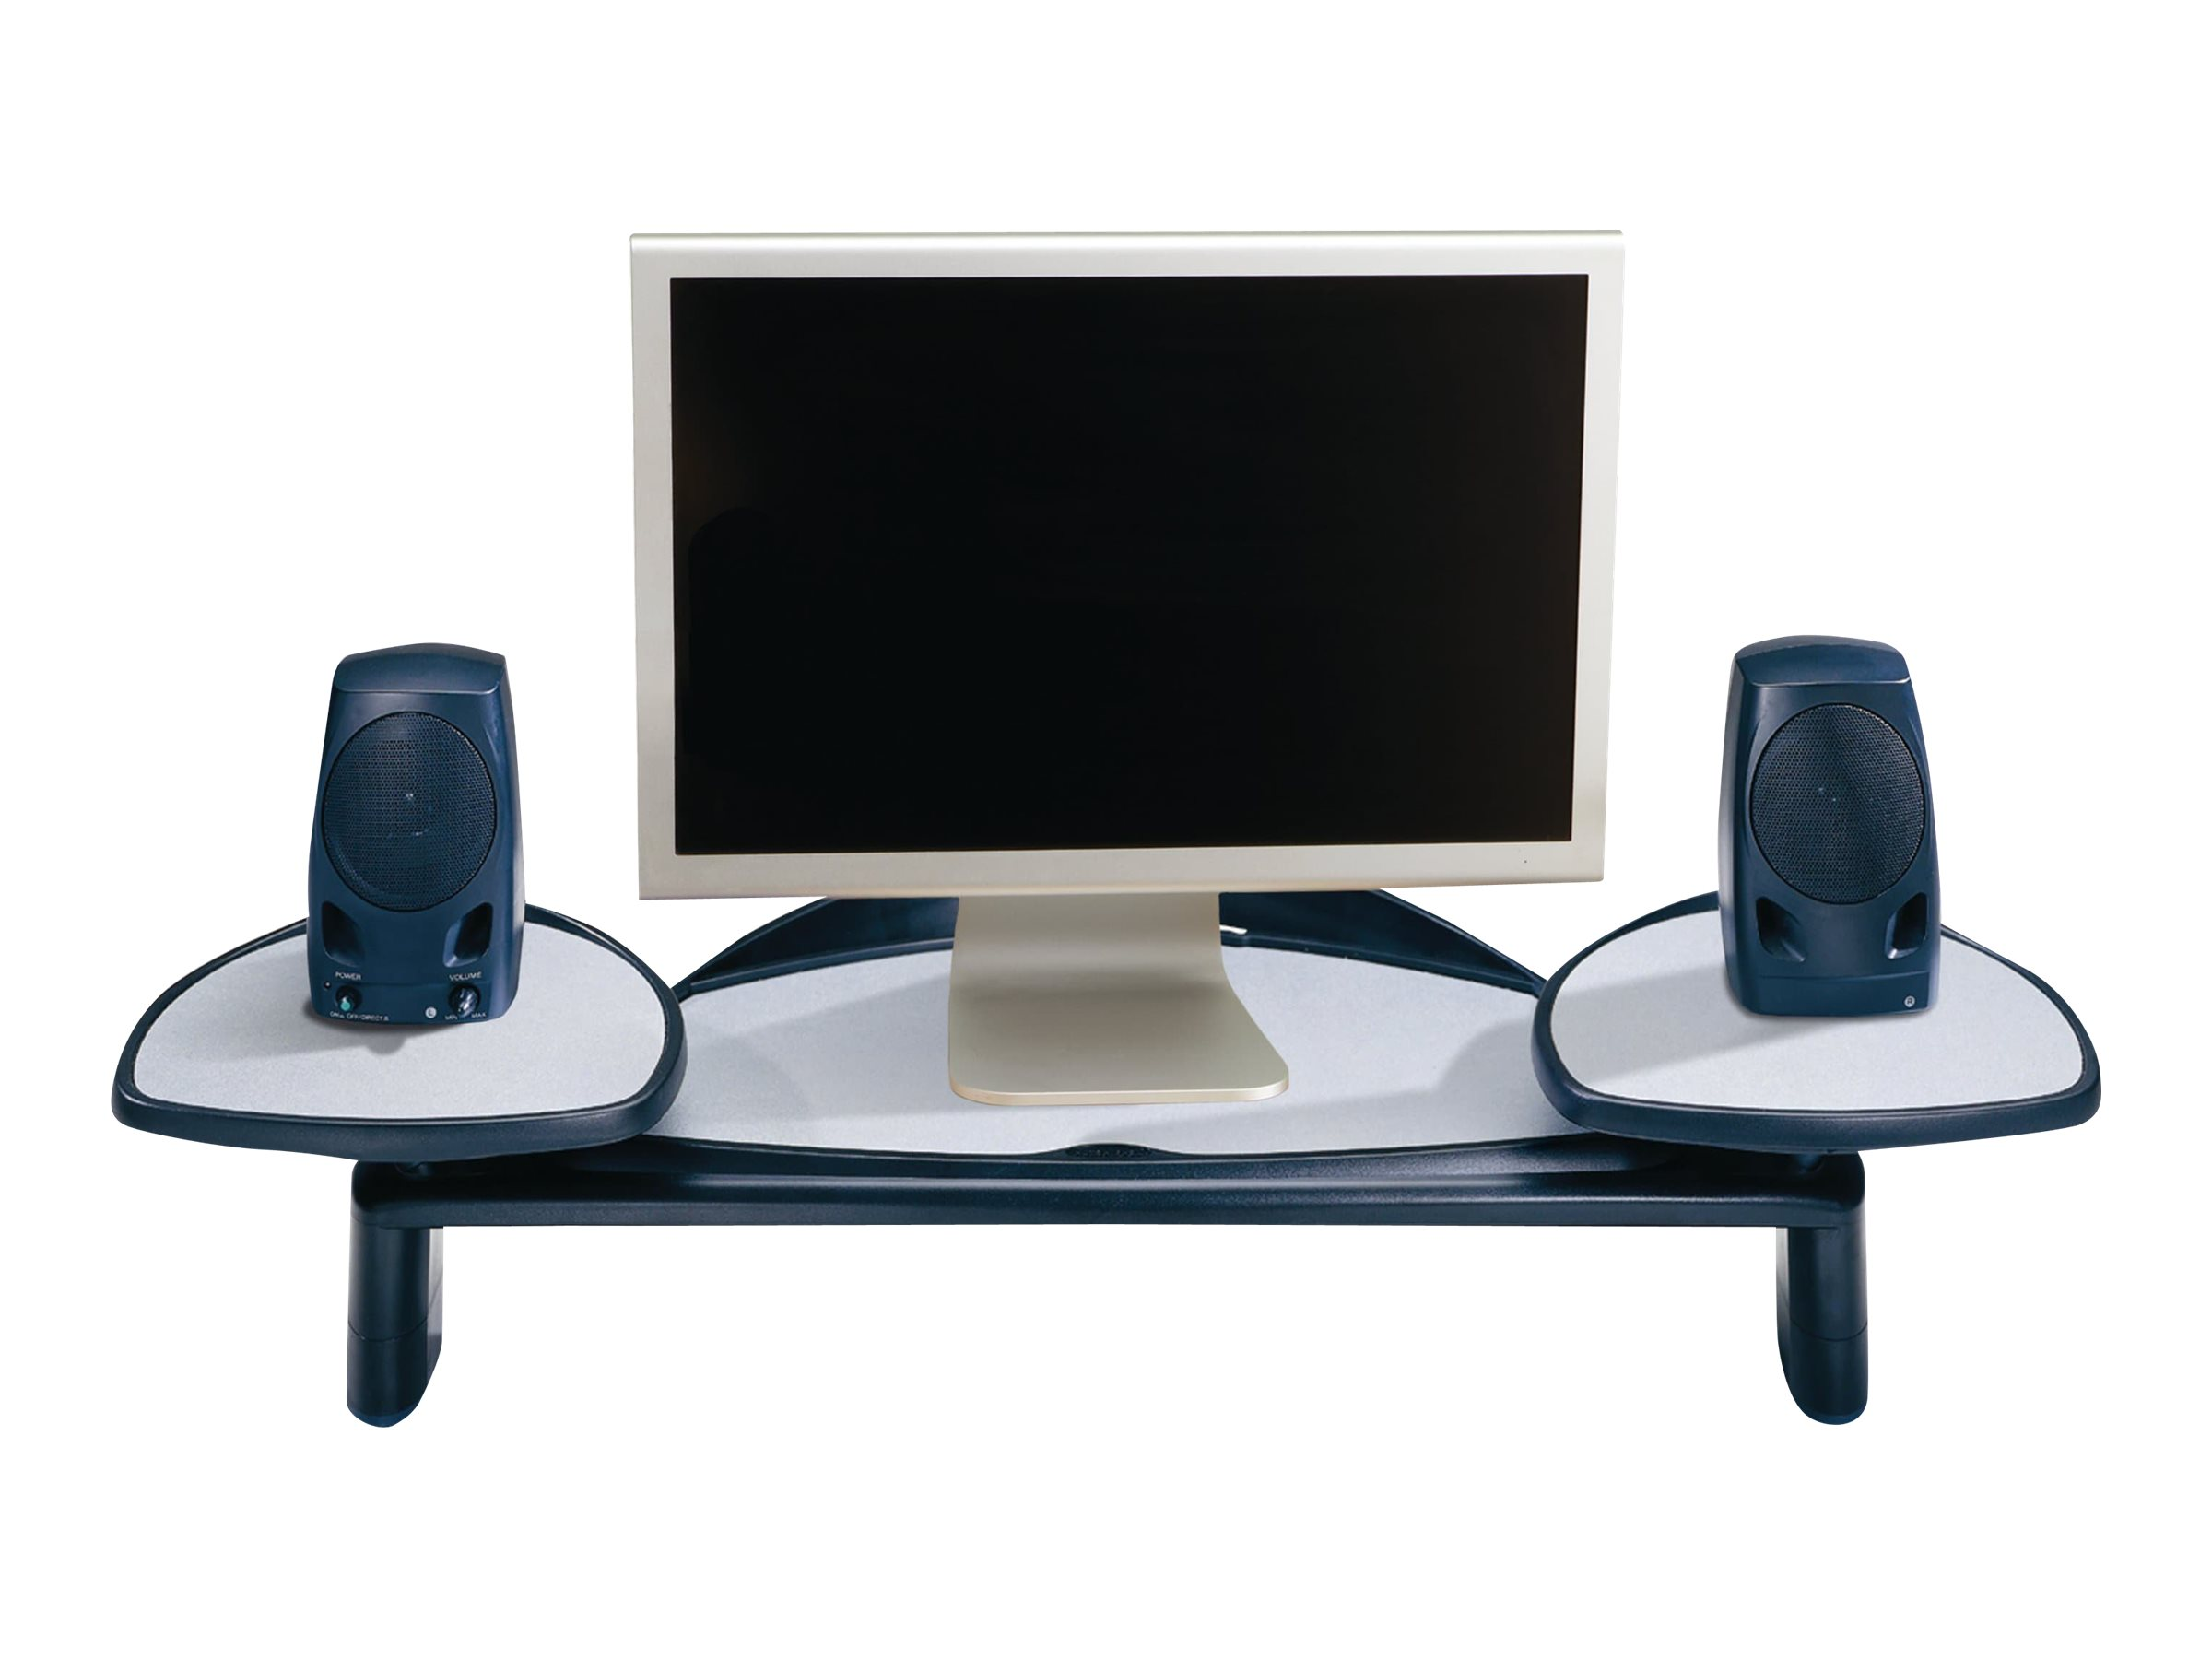 Kensington Flat Panel Monitor Stand with SmartFit System - stand